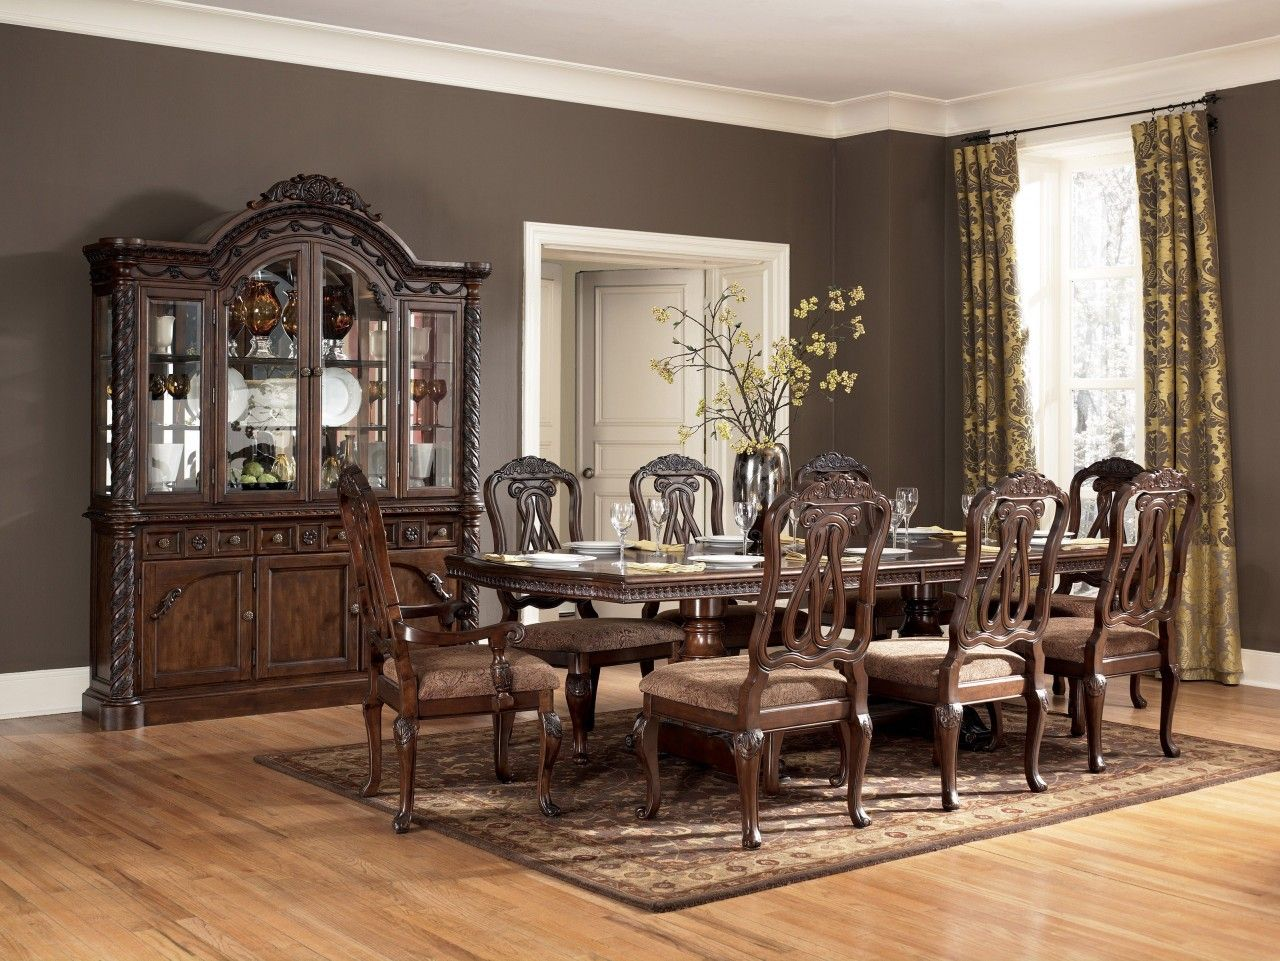 Ashley Furniture North Shore Dining Room Carolina Discount Gallery Affordable Dining Room Dining Room Sets Dining Furniture